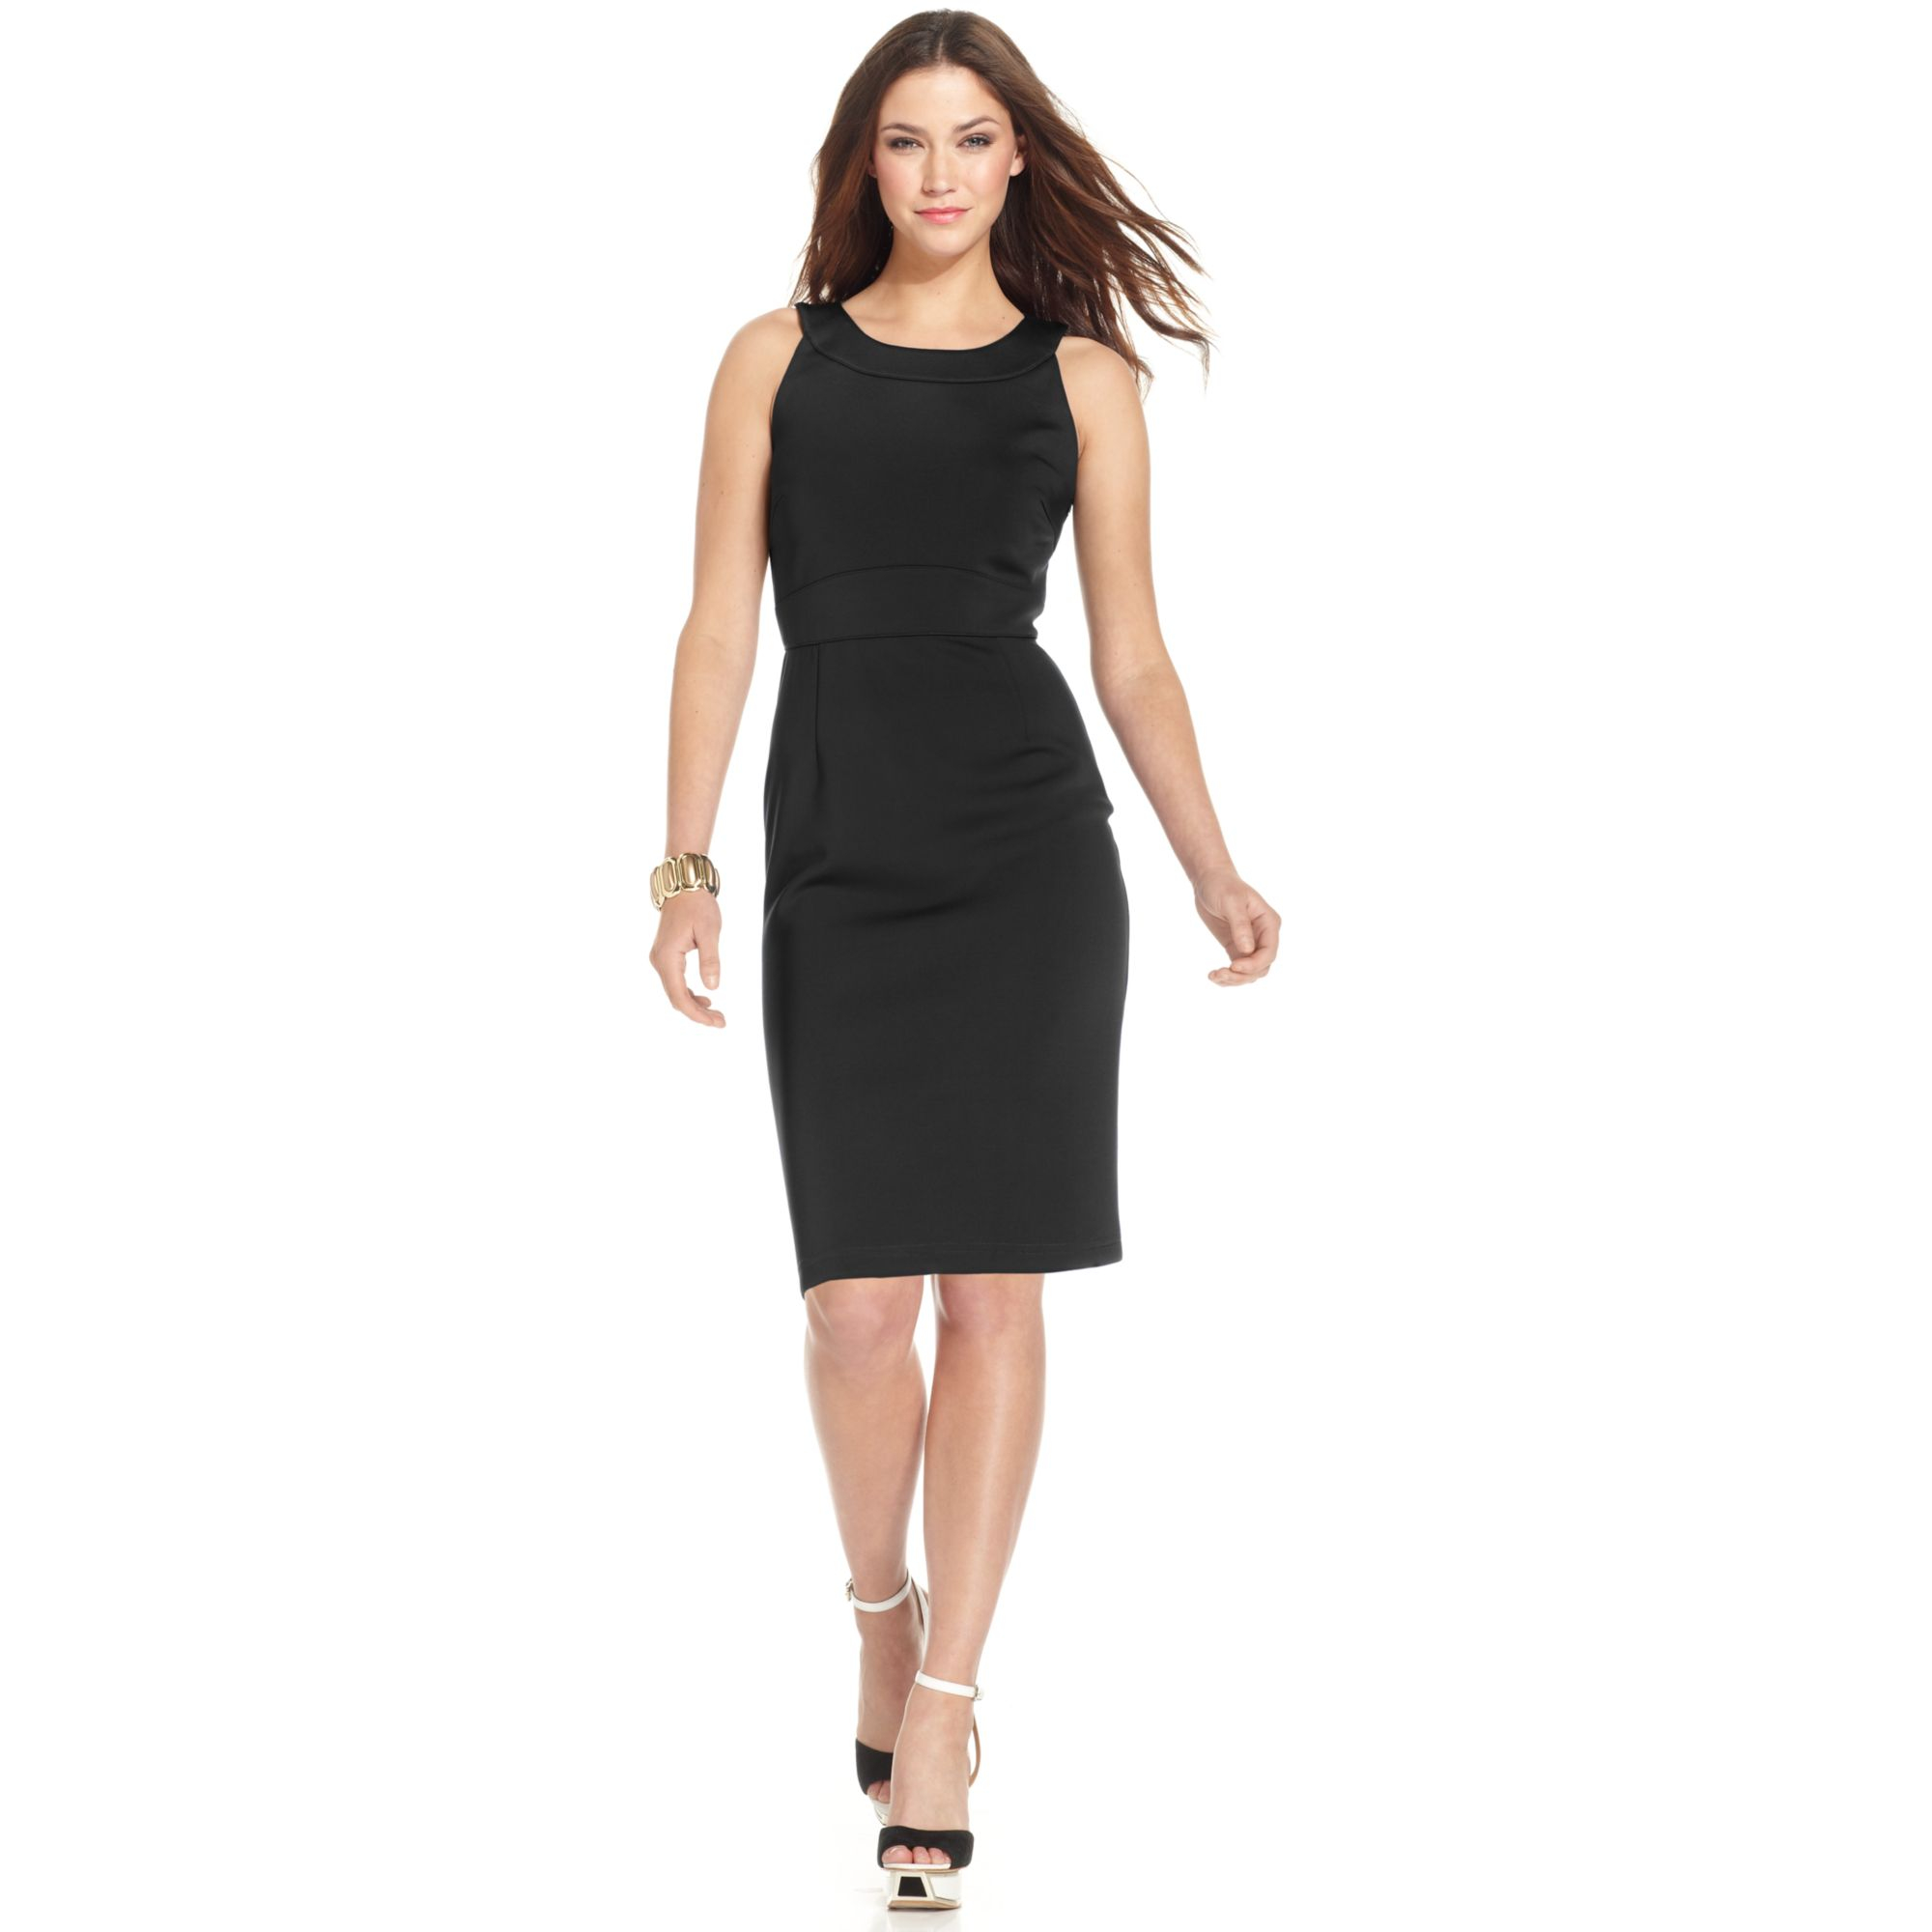 Our beautiful petite dresses are perfect for work & our petite casual dresses are stylish for everything in between. Shop today! Dresses Everyday Dresses Work Dresses Party Dresses Little Black Dresses Fit & Flare Dresses Wrap Dresses Swing Dresses Shift Dresses Sheath Dresses. Petite Boucle Sheath Dress. $ NOW 40% OFF! USE CODE.